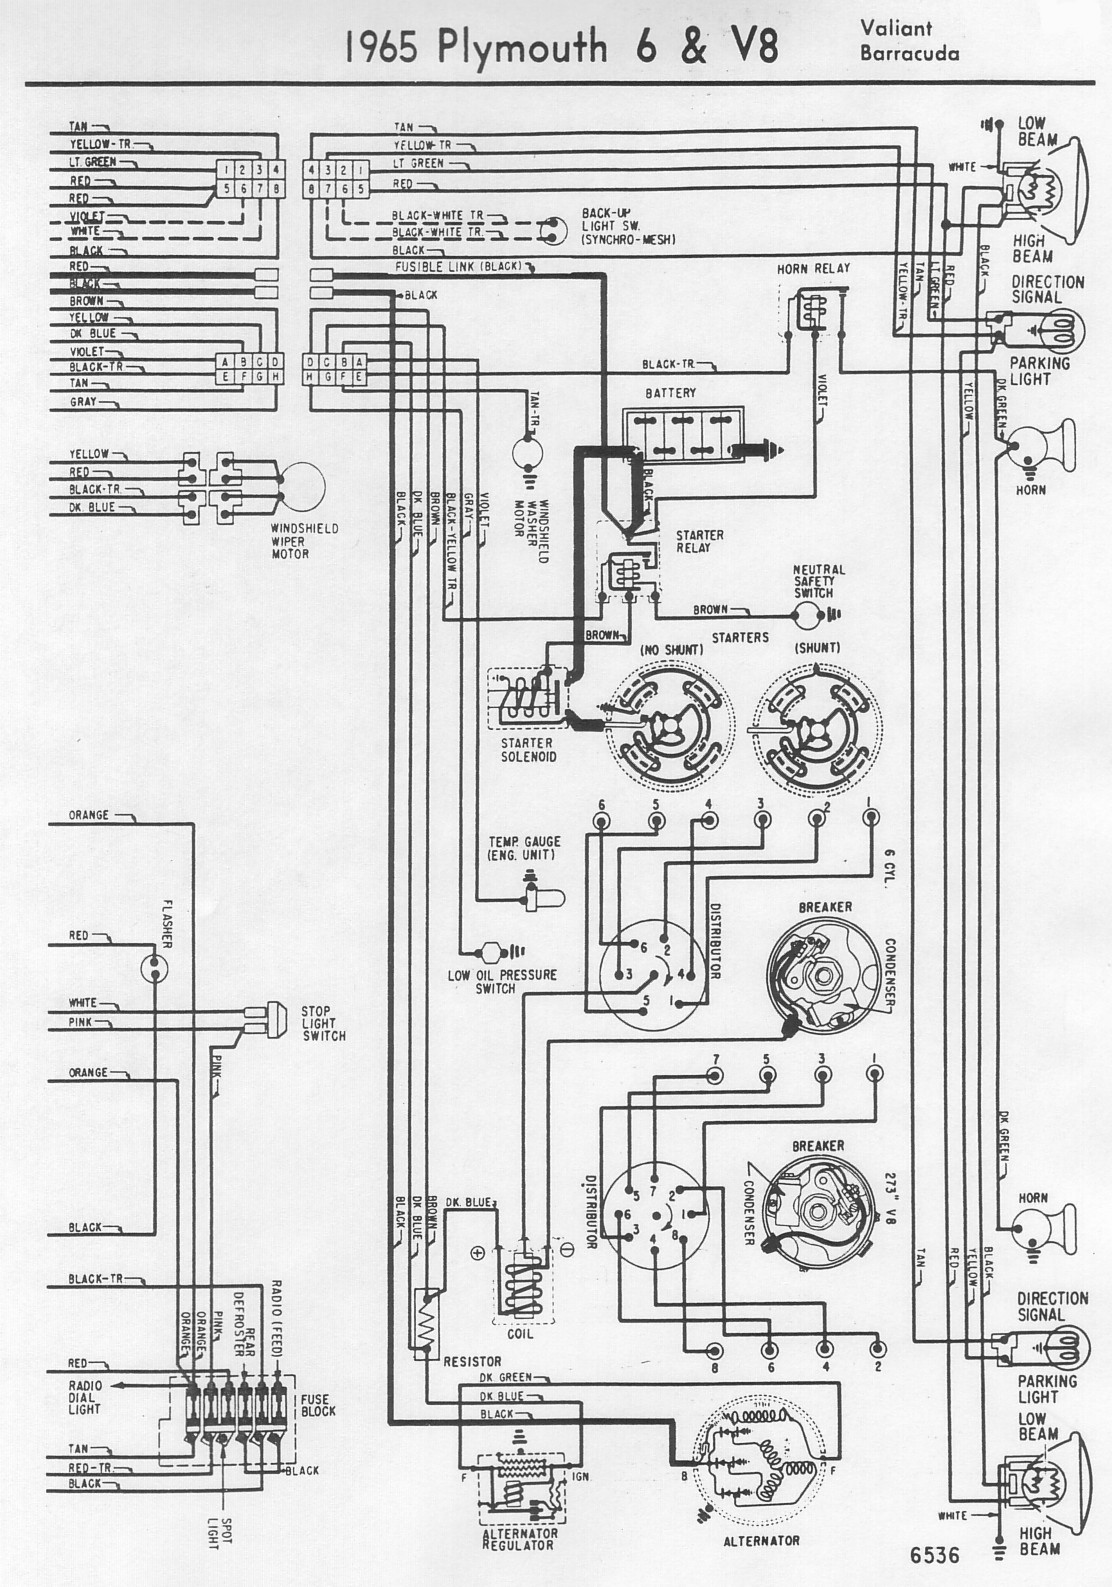 1970 Plymouth Electronic Ignition Wiring Diagram  Best